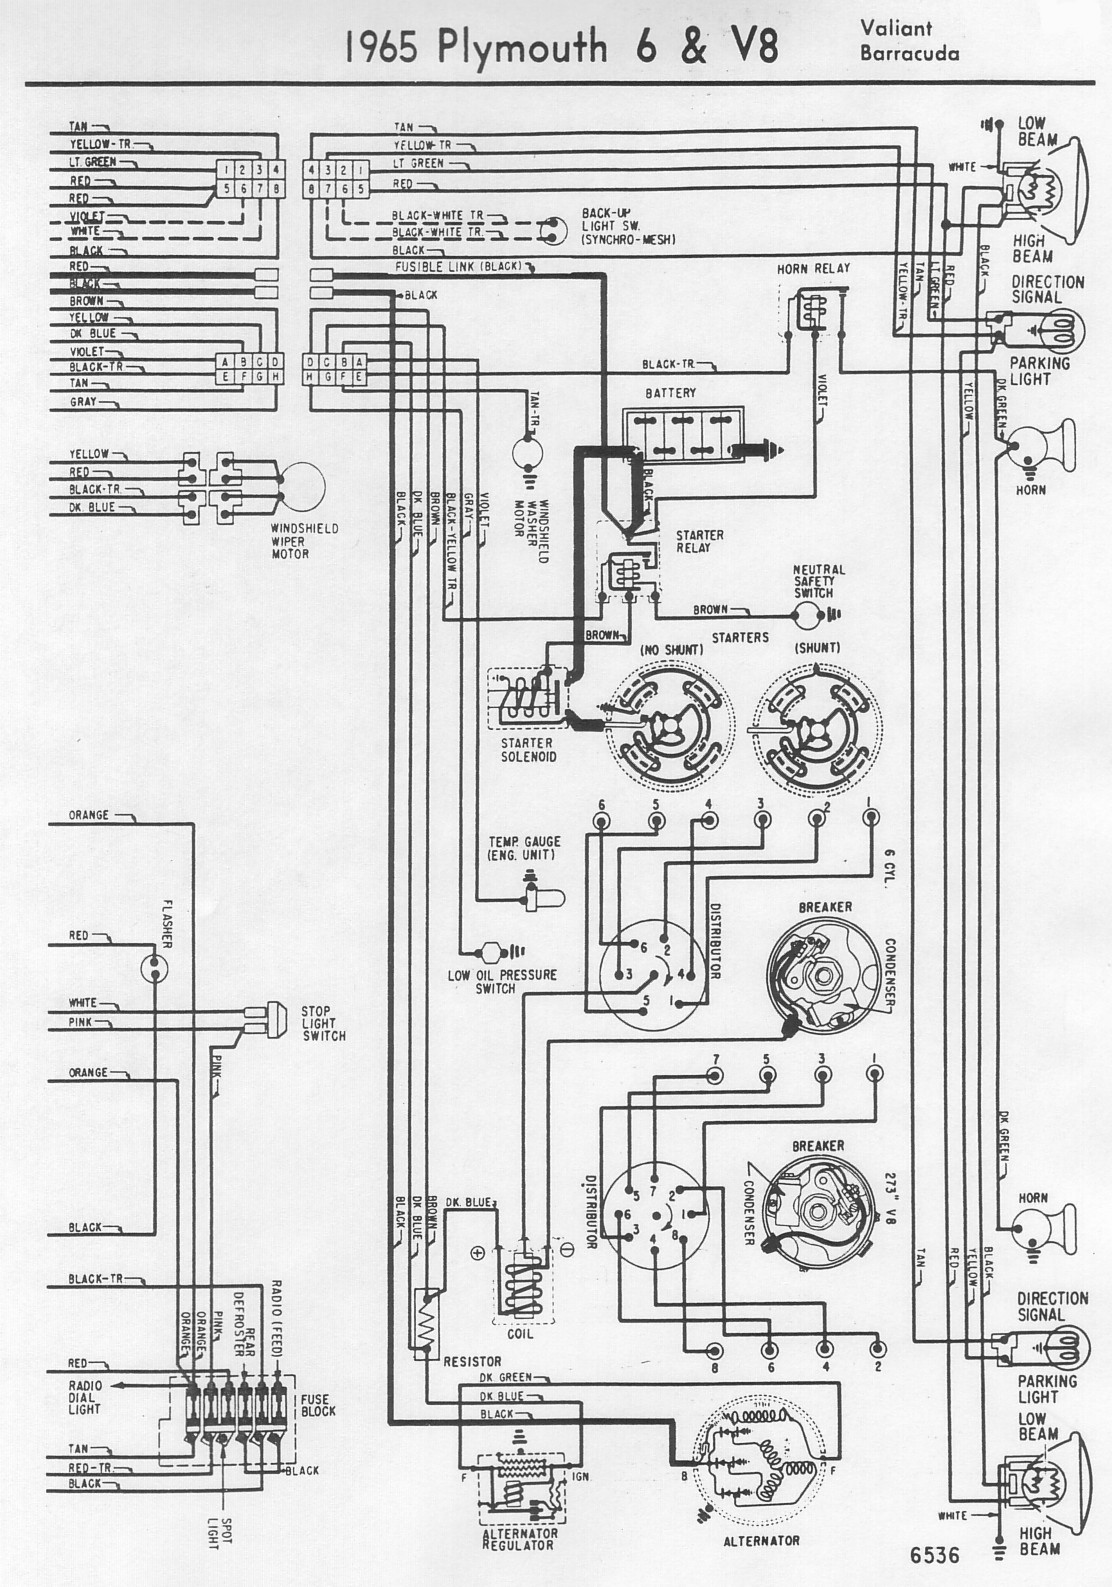 1970 Plymouth Electronic Ignition Wiring Diagram  Best